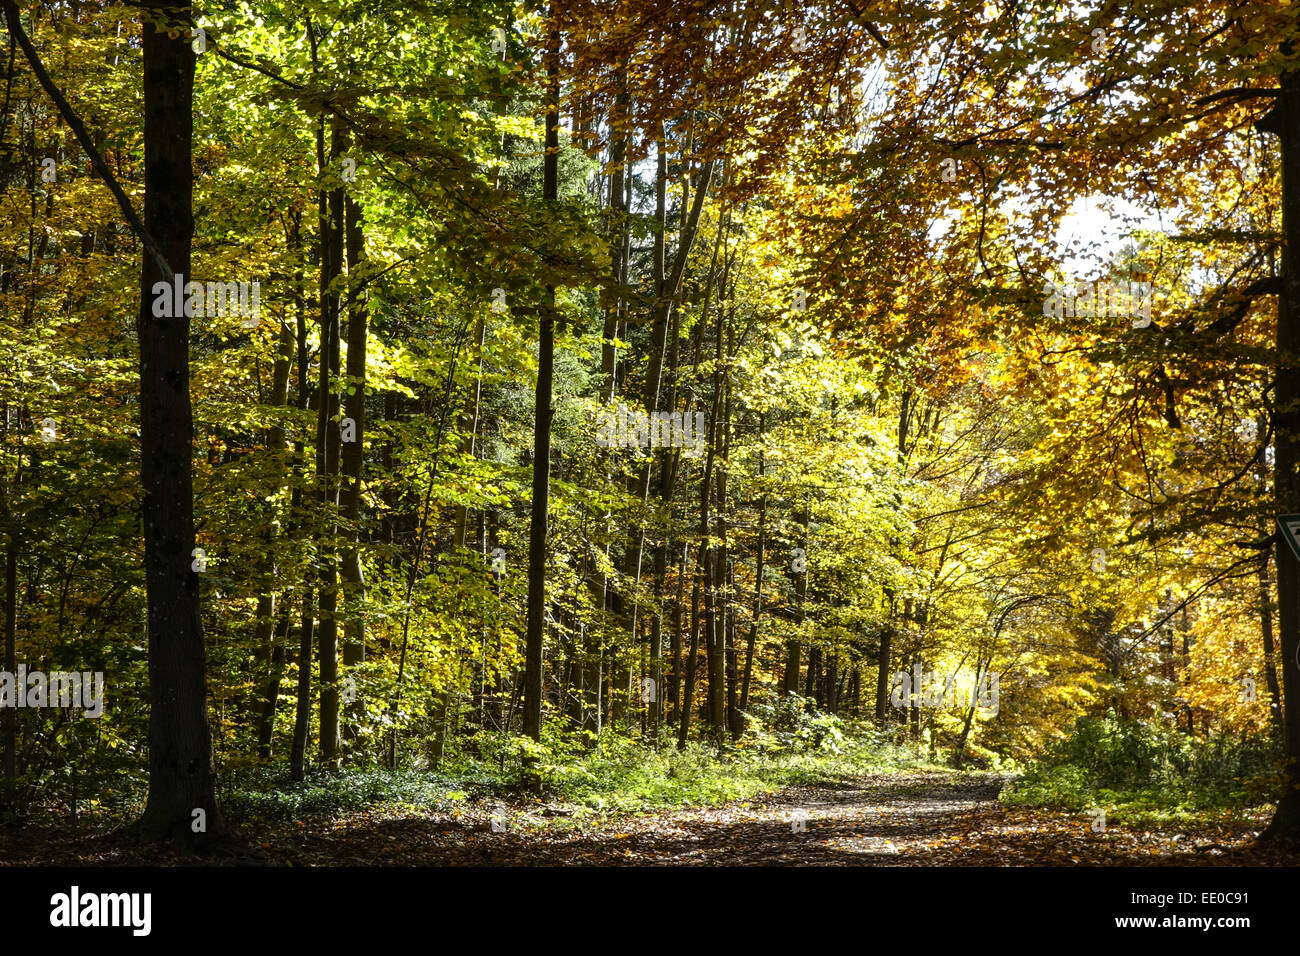 Farbiger Laubwald im Herbst, Colored leaves in autumn deciduous forest, Tree, Trees, Logs, Autumn, Colors, Fall, - Stock Image